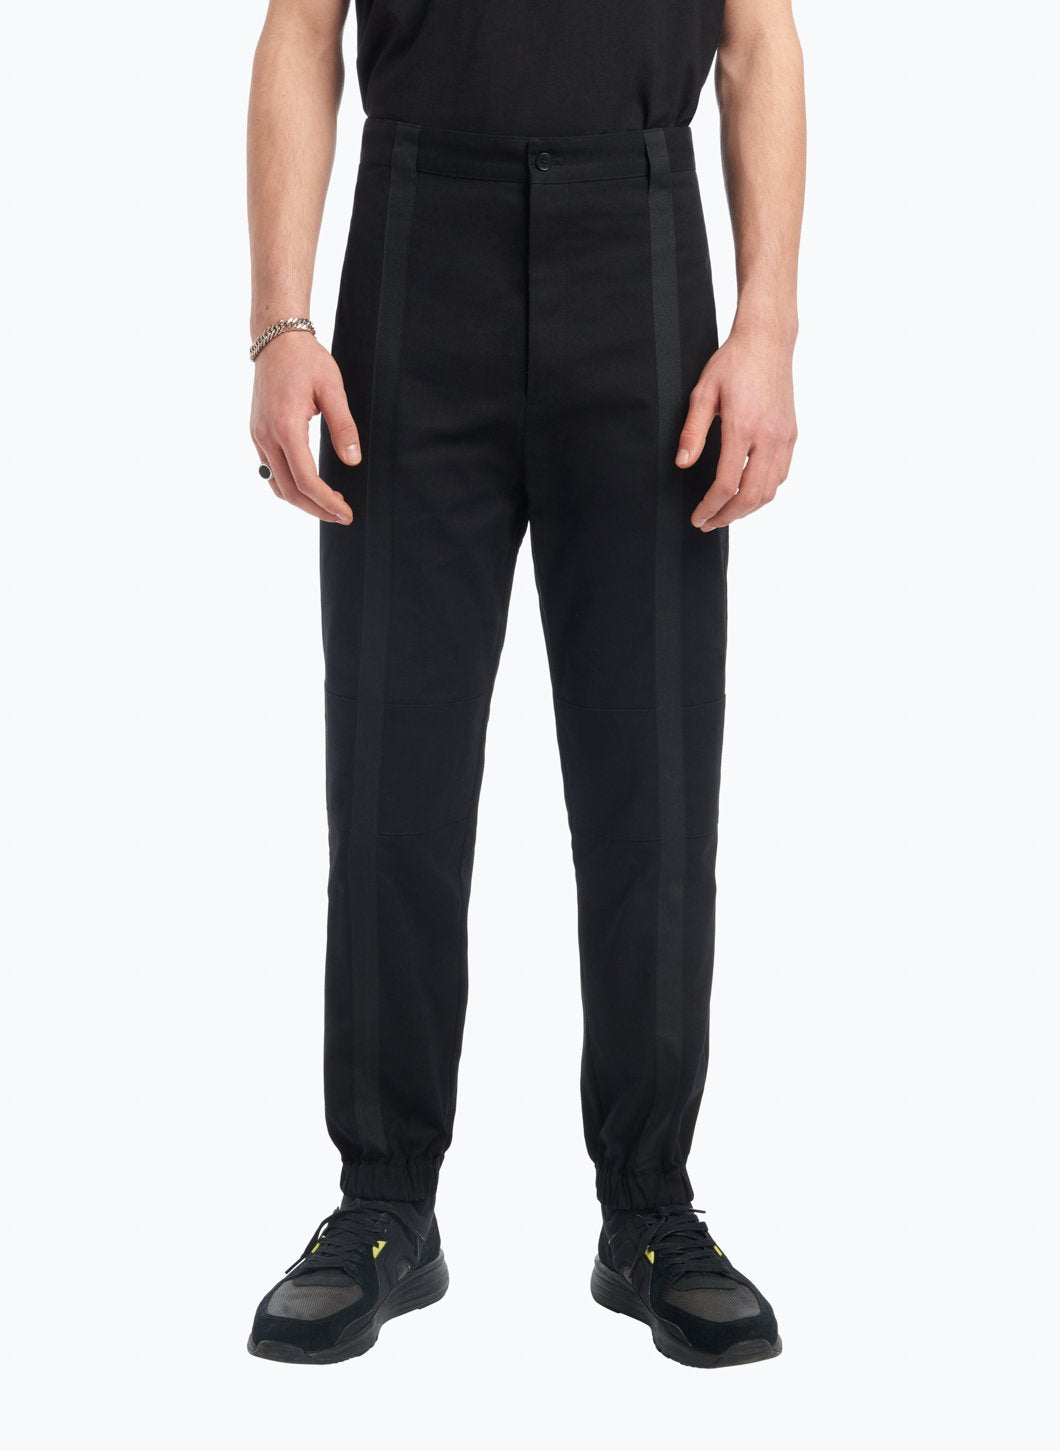 Pants with Vertical Bands in Black Gabardine with Black Cotton Trim